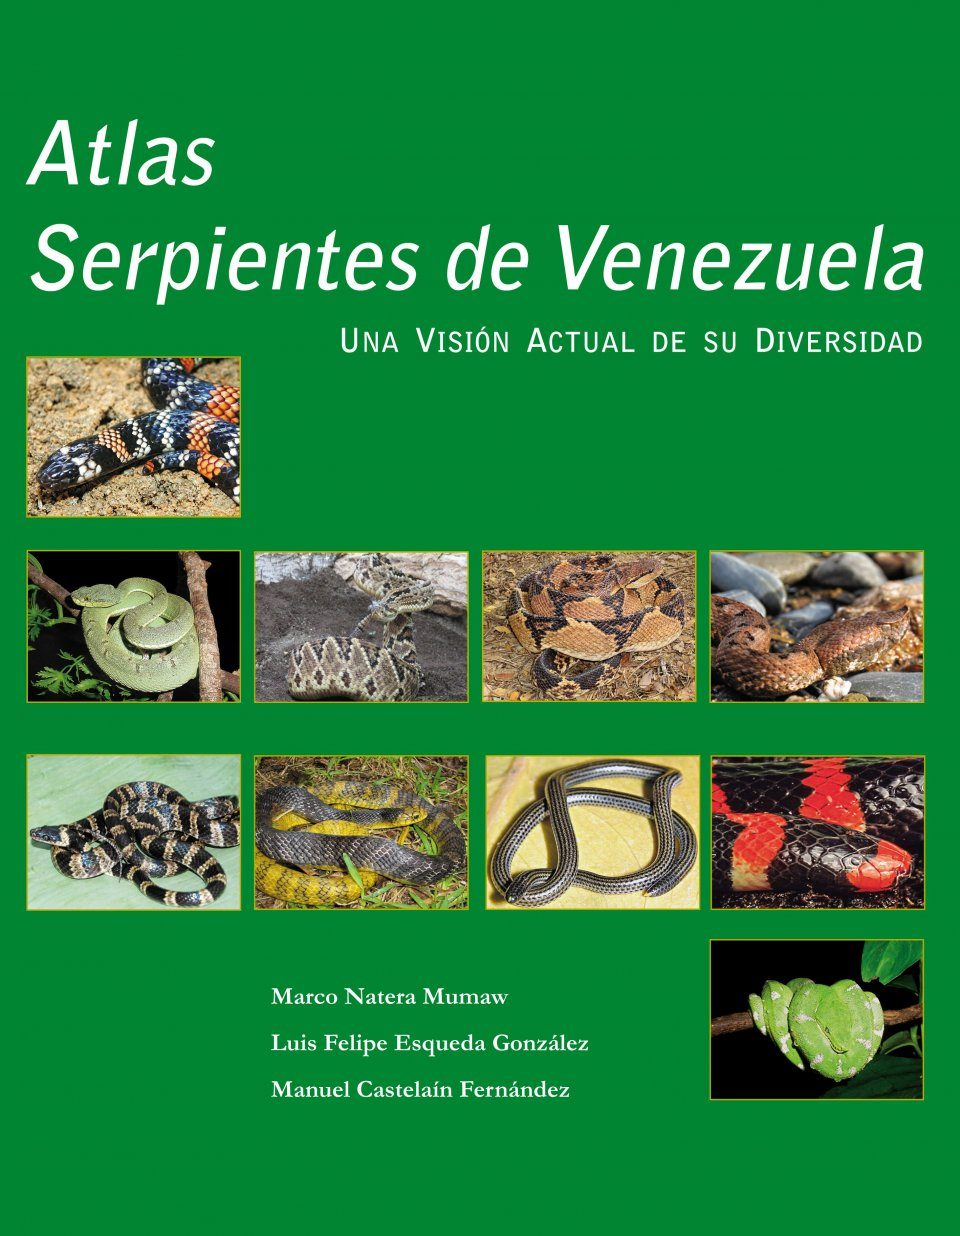 Atlas Serpientes de Venezuela: Una Visión Actual de su Diversidad [Atlas of Snakes of Venezuela: A Current View of their Diversity]